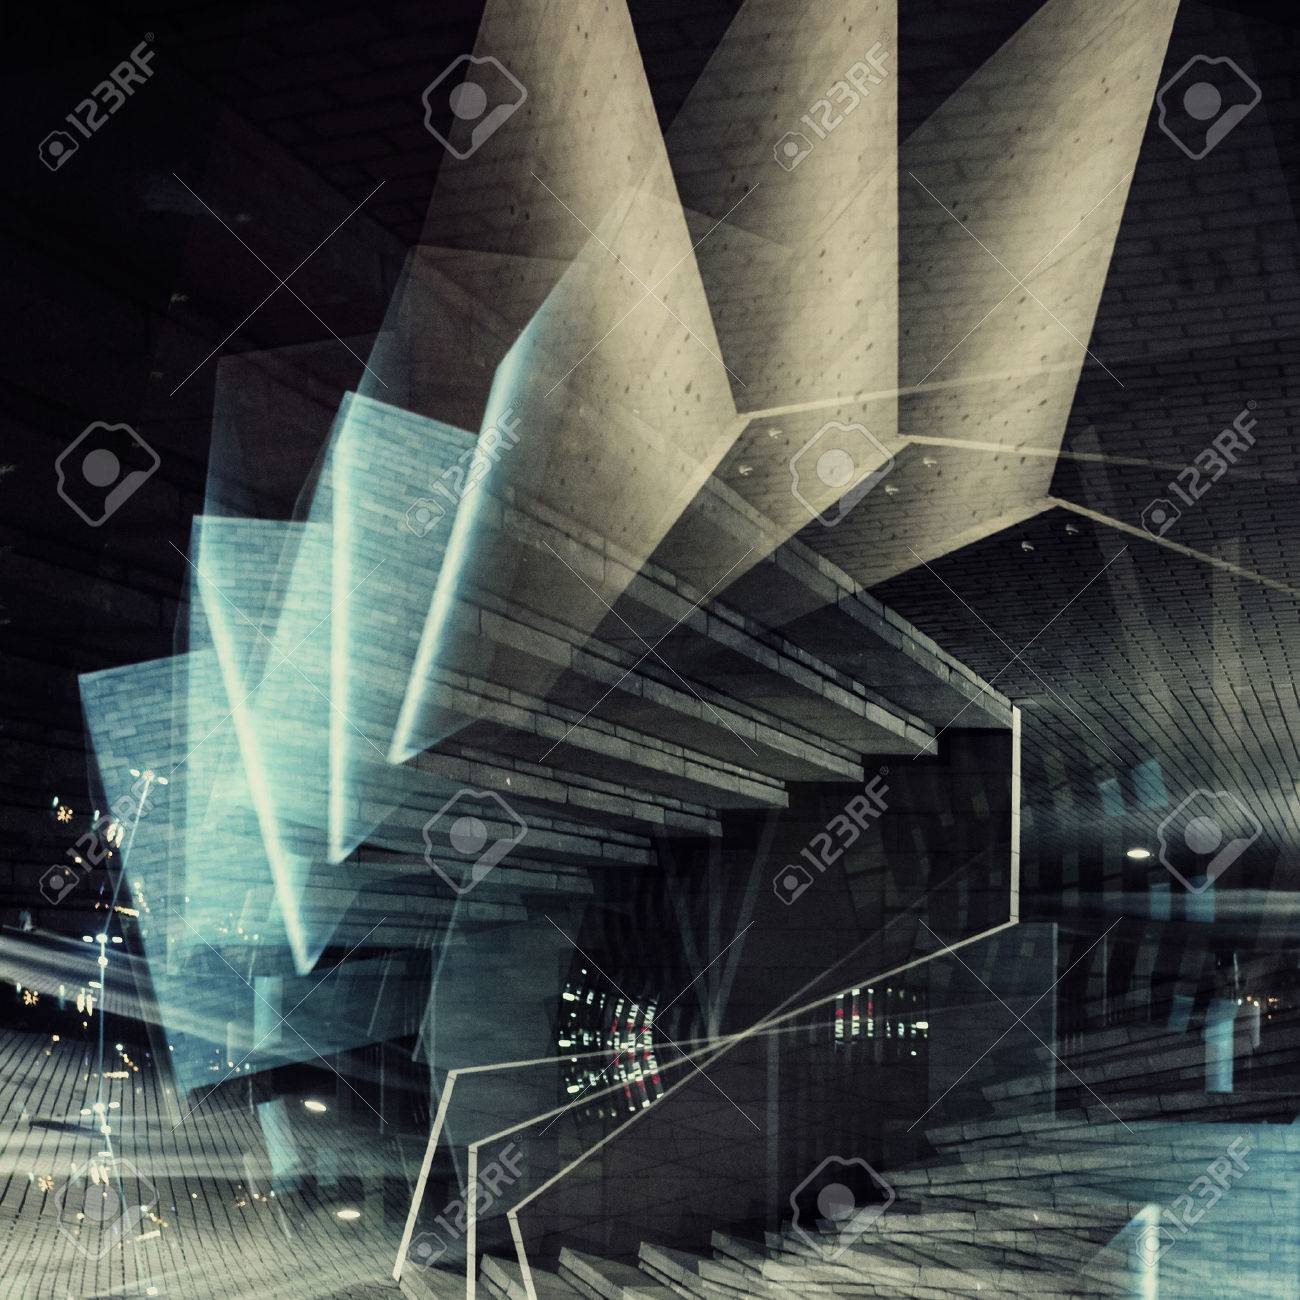 Abstract multiple exposure background. Architectural forms. Stock Photo - 48054339